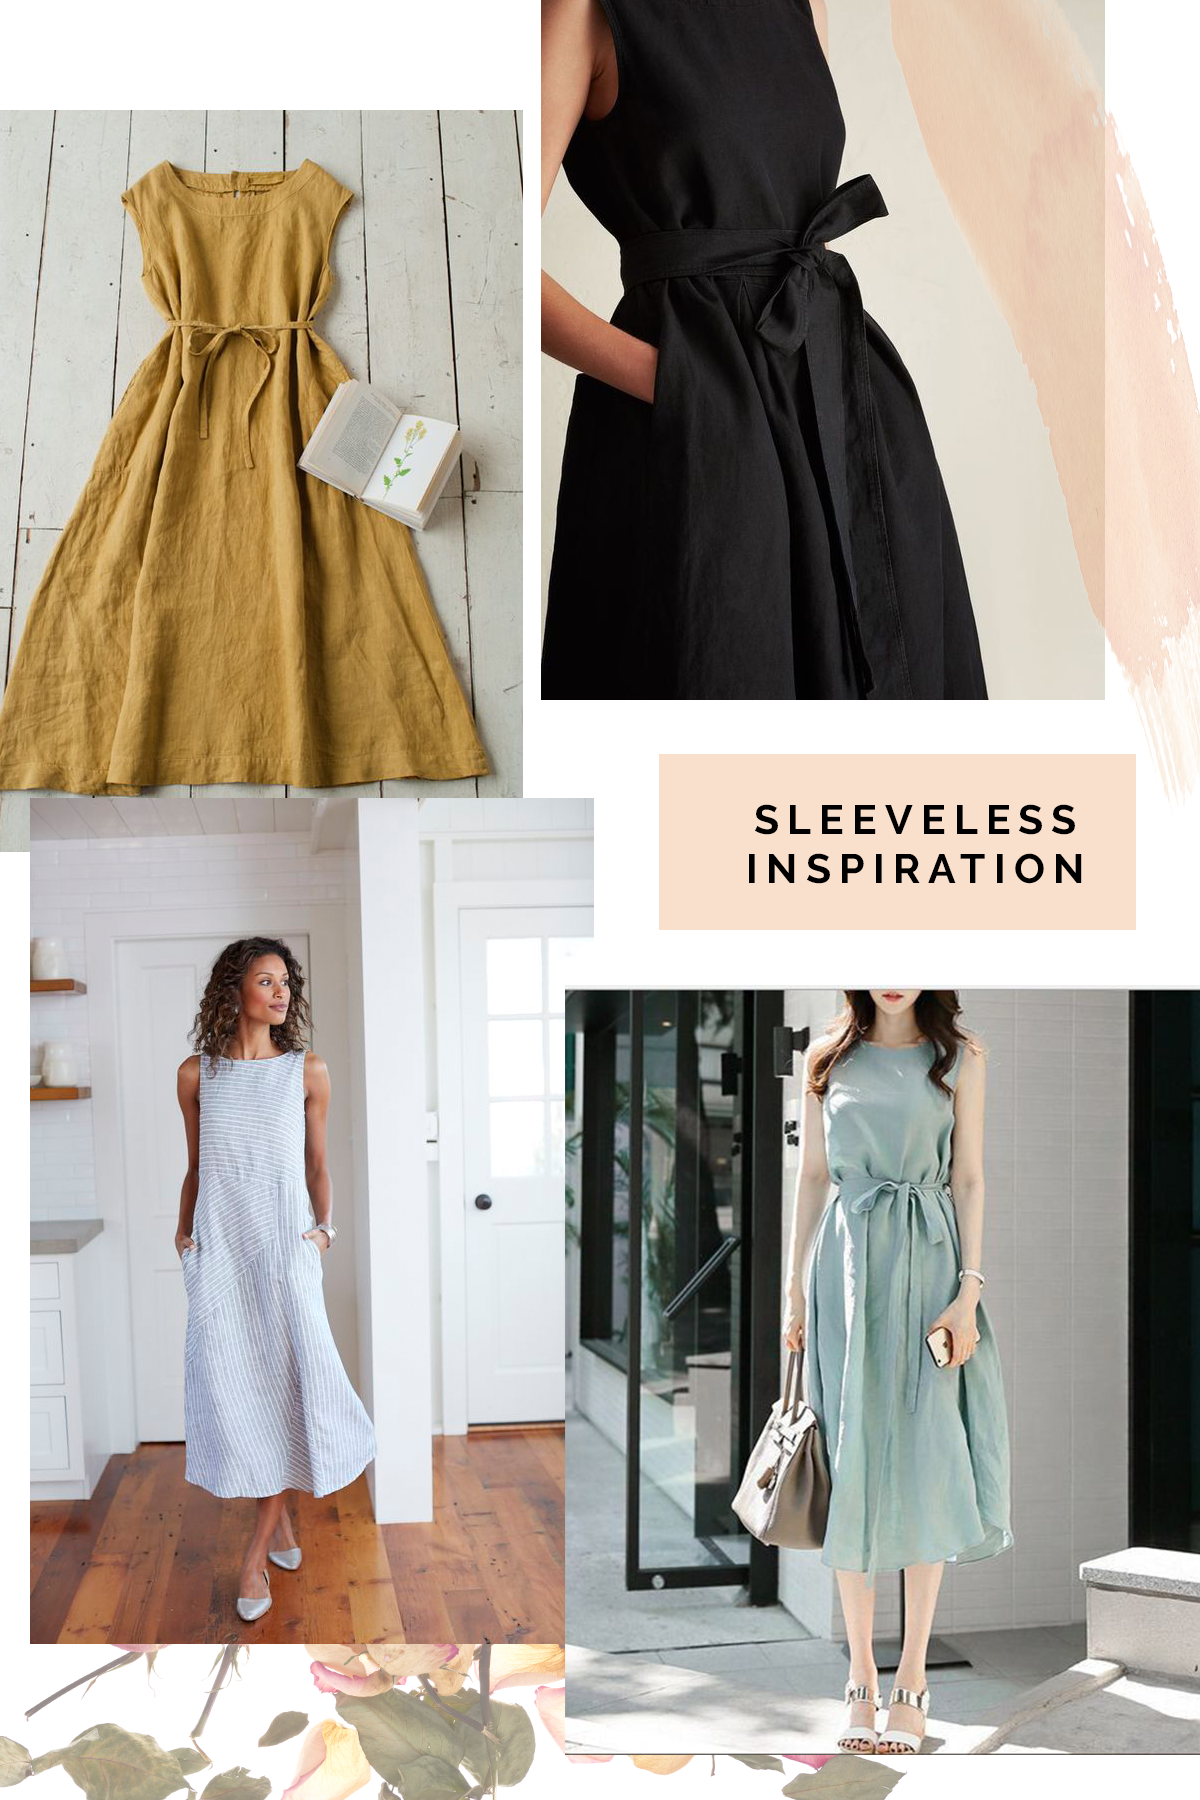 Floreat Sleeveless Inspiration